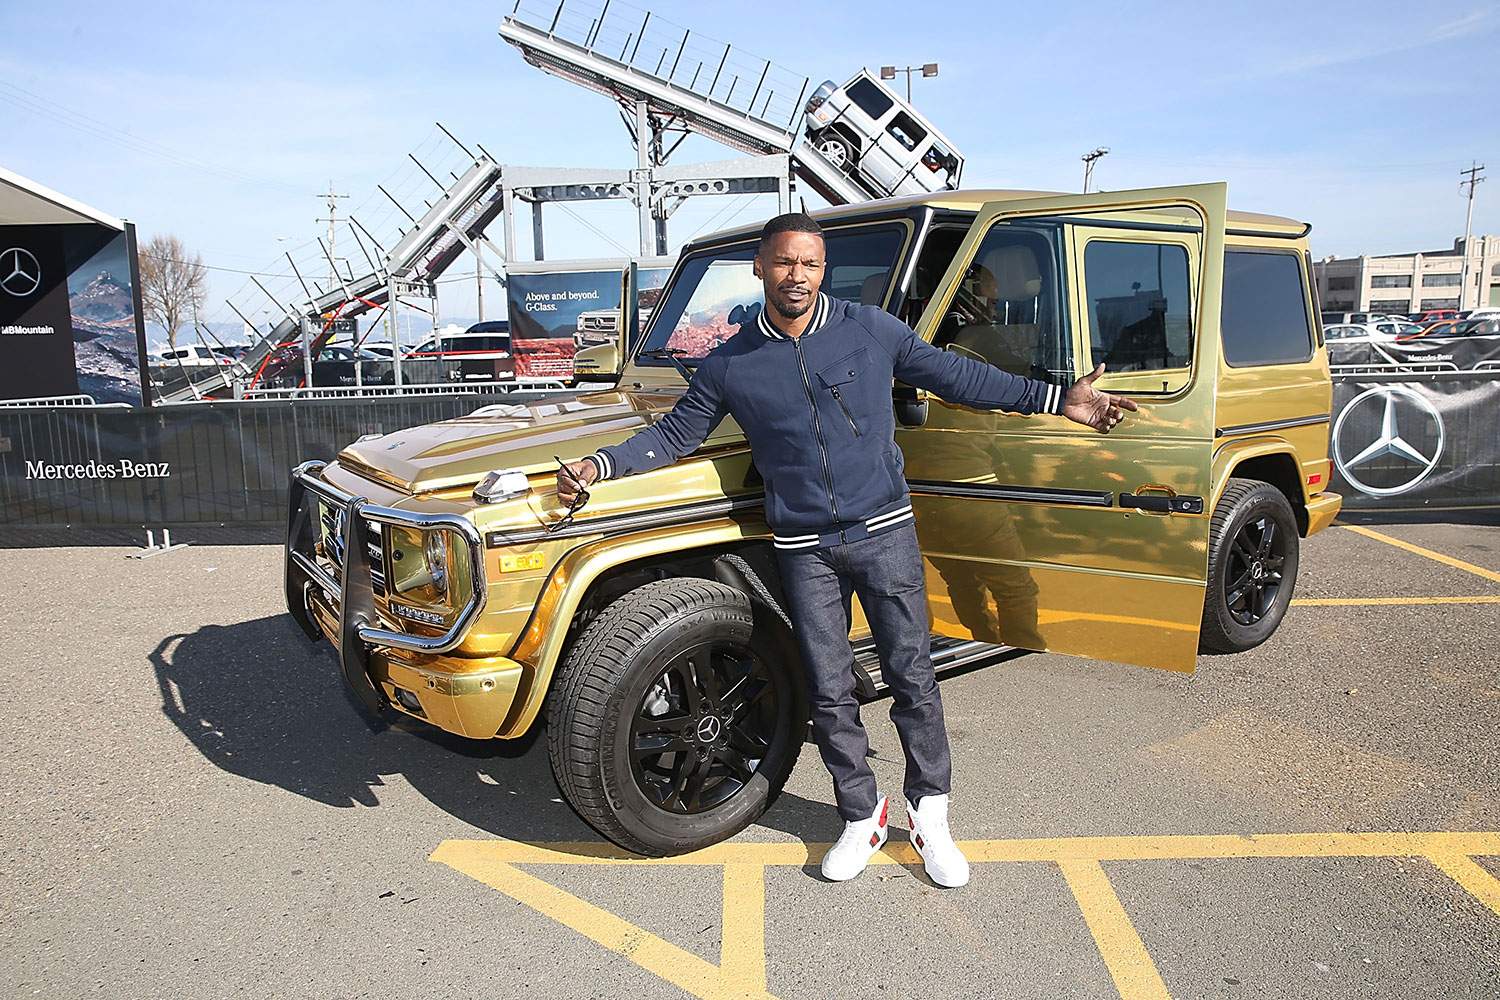 The Mercedes-Benz G550 Special Edition In Celebration Of Super Bowl 50 3